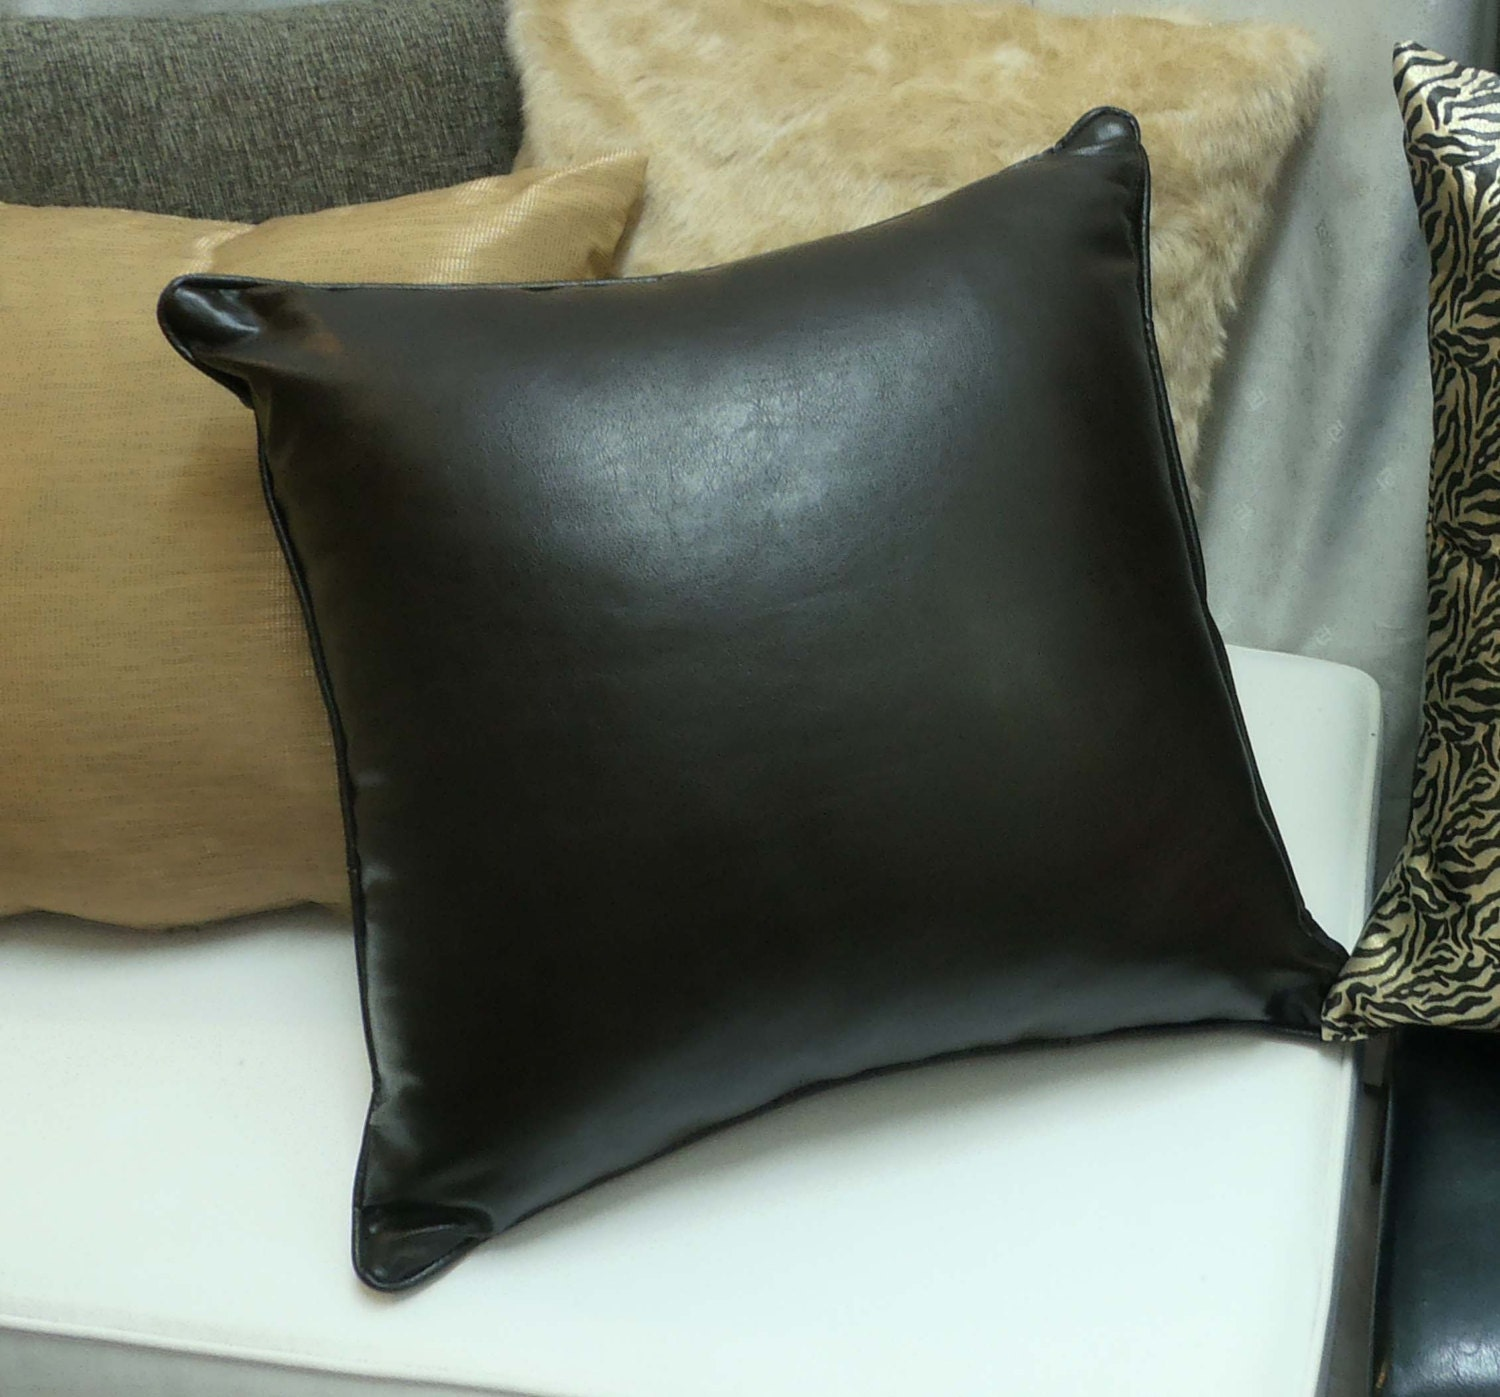 Throw Pillows Faux Leather : Faux leather Throw Pillow-Dark Brown Cushion by mypreciouspillow